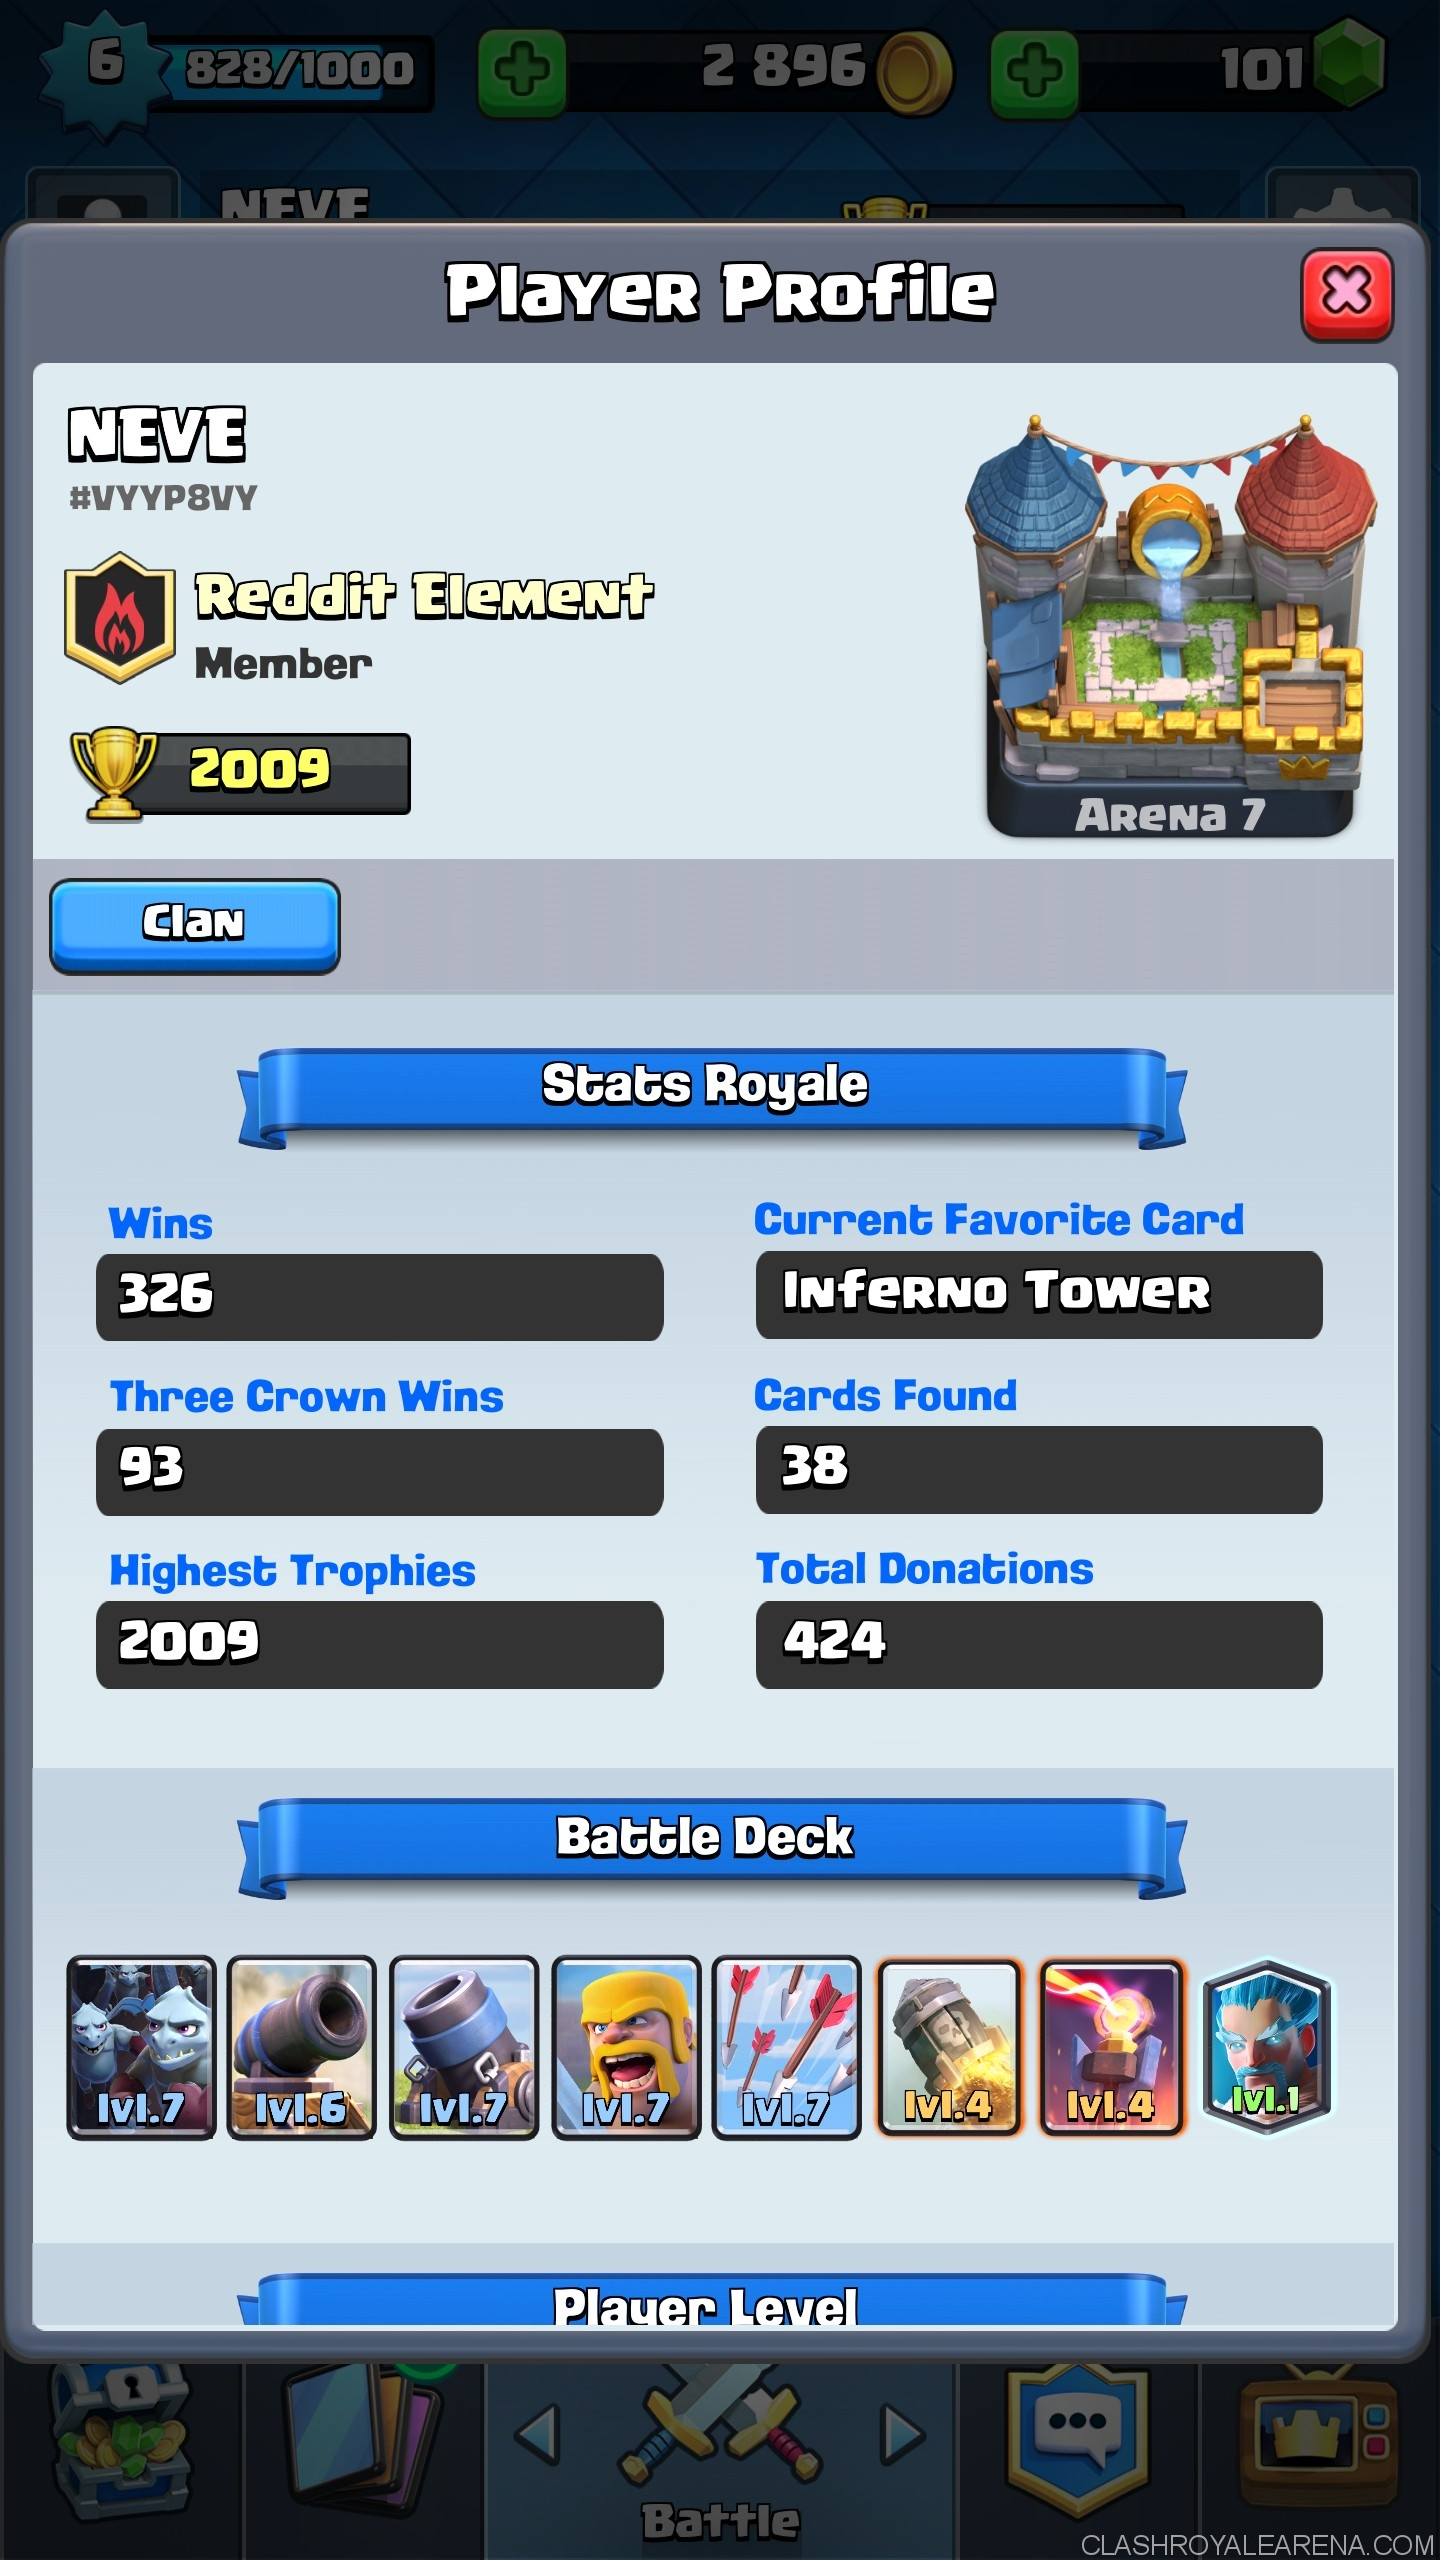 mortar deck which helps me push to arena 7 at level 6